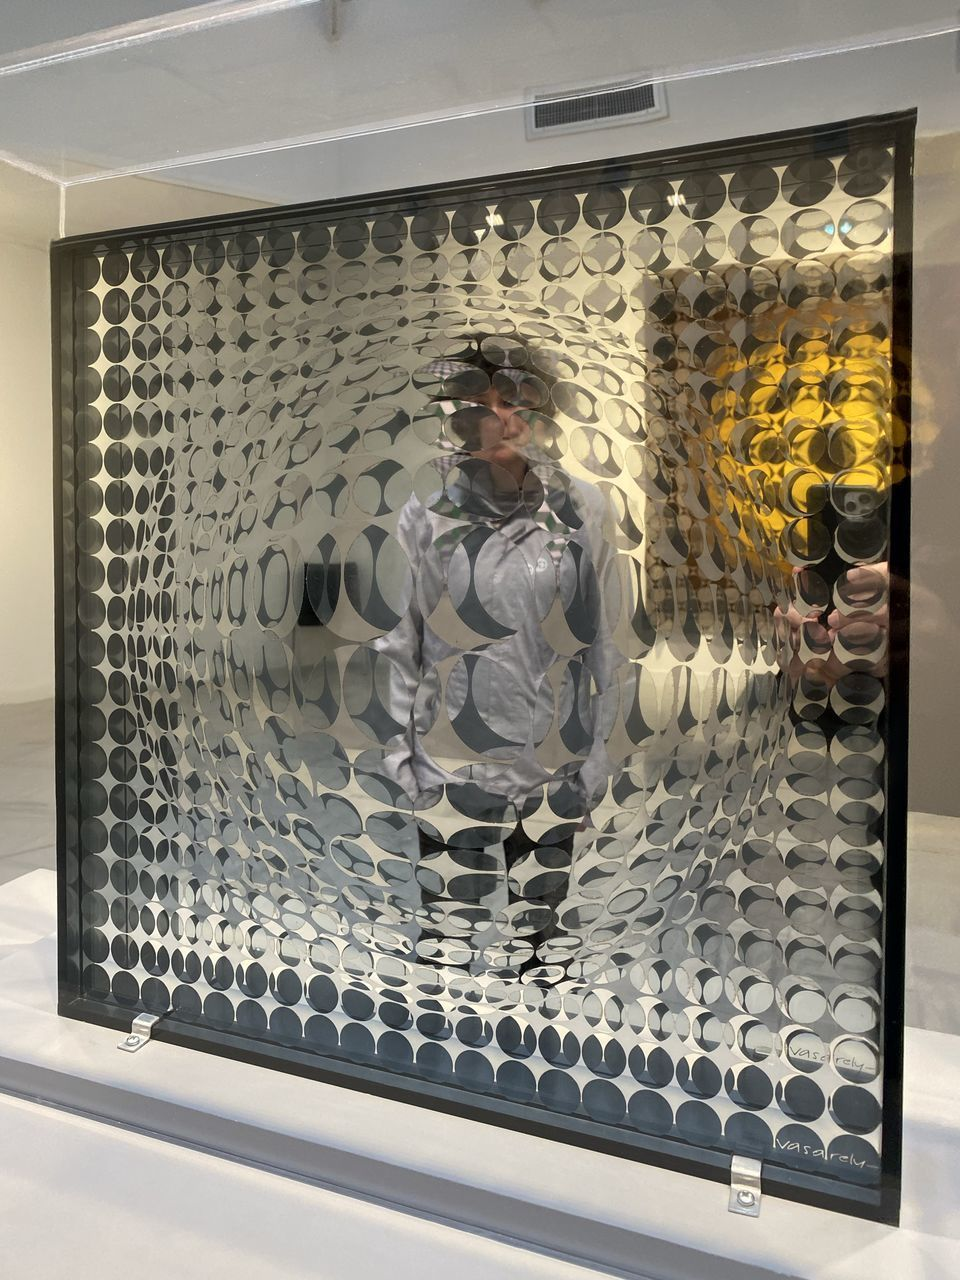 indoors, transparent, technology, window, glass - material, human representation, males, one person, men, security, front view, adult, healthcare and medicine, shape, male likeness, real people, pattern, lifestyles